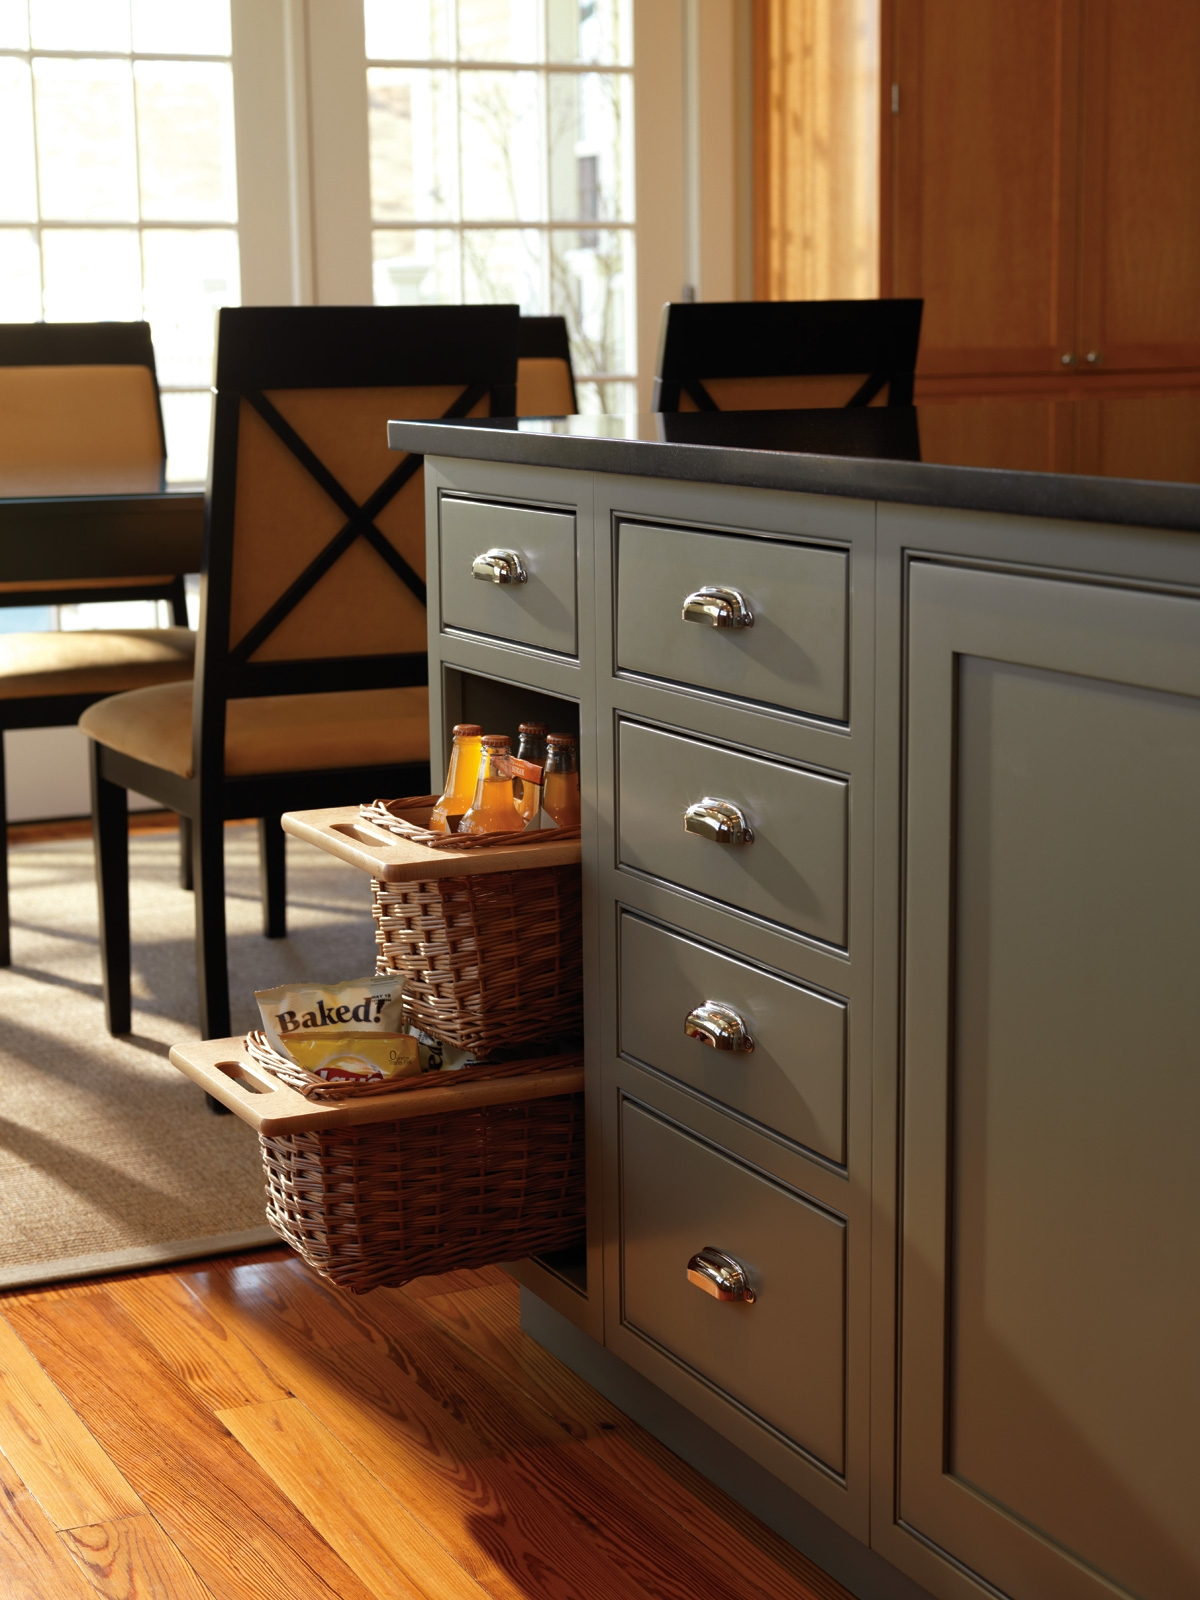 Pull Out Rattan Baskets Kitchen Cabinets